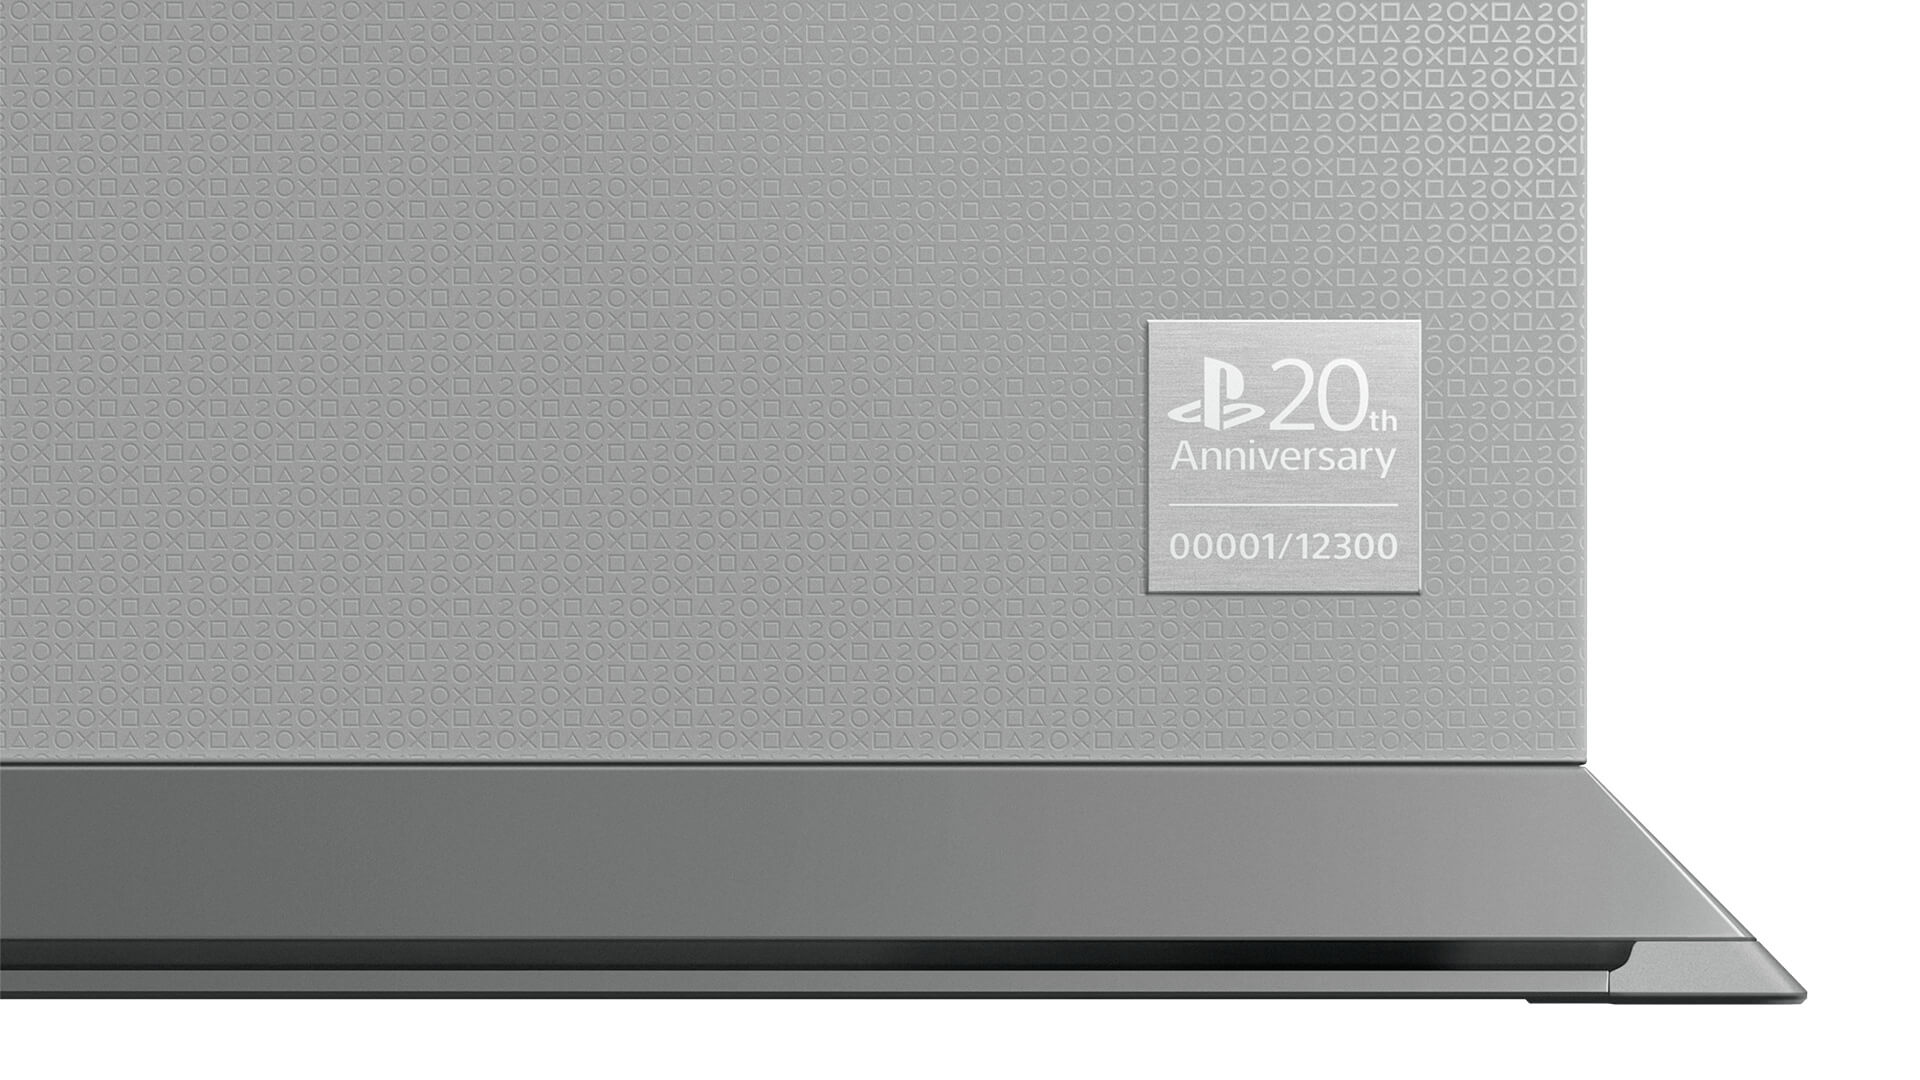 Sony's selling 20th anniversary edition ps4s for £19. 94, but only.